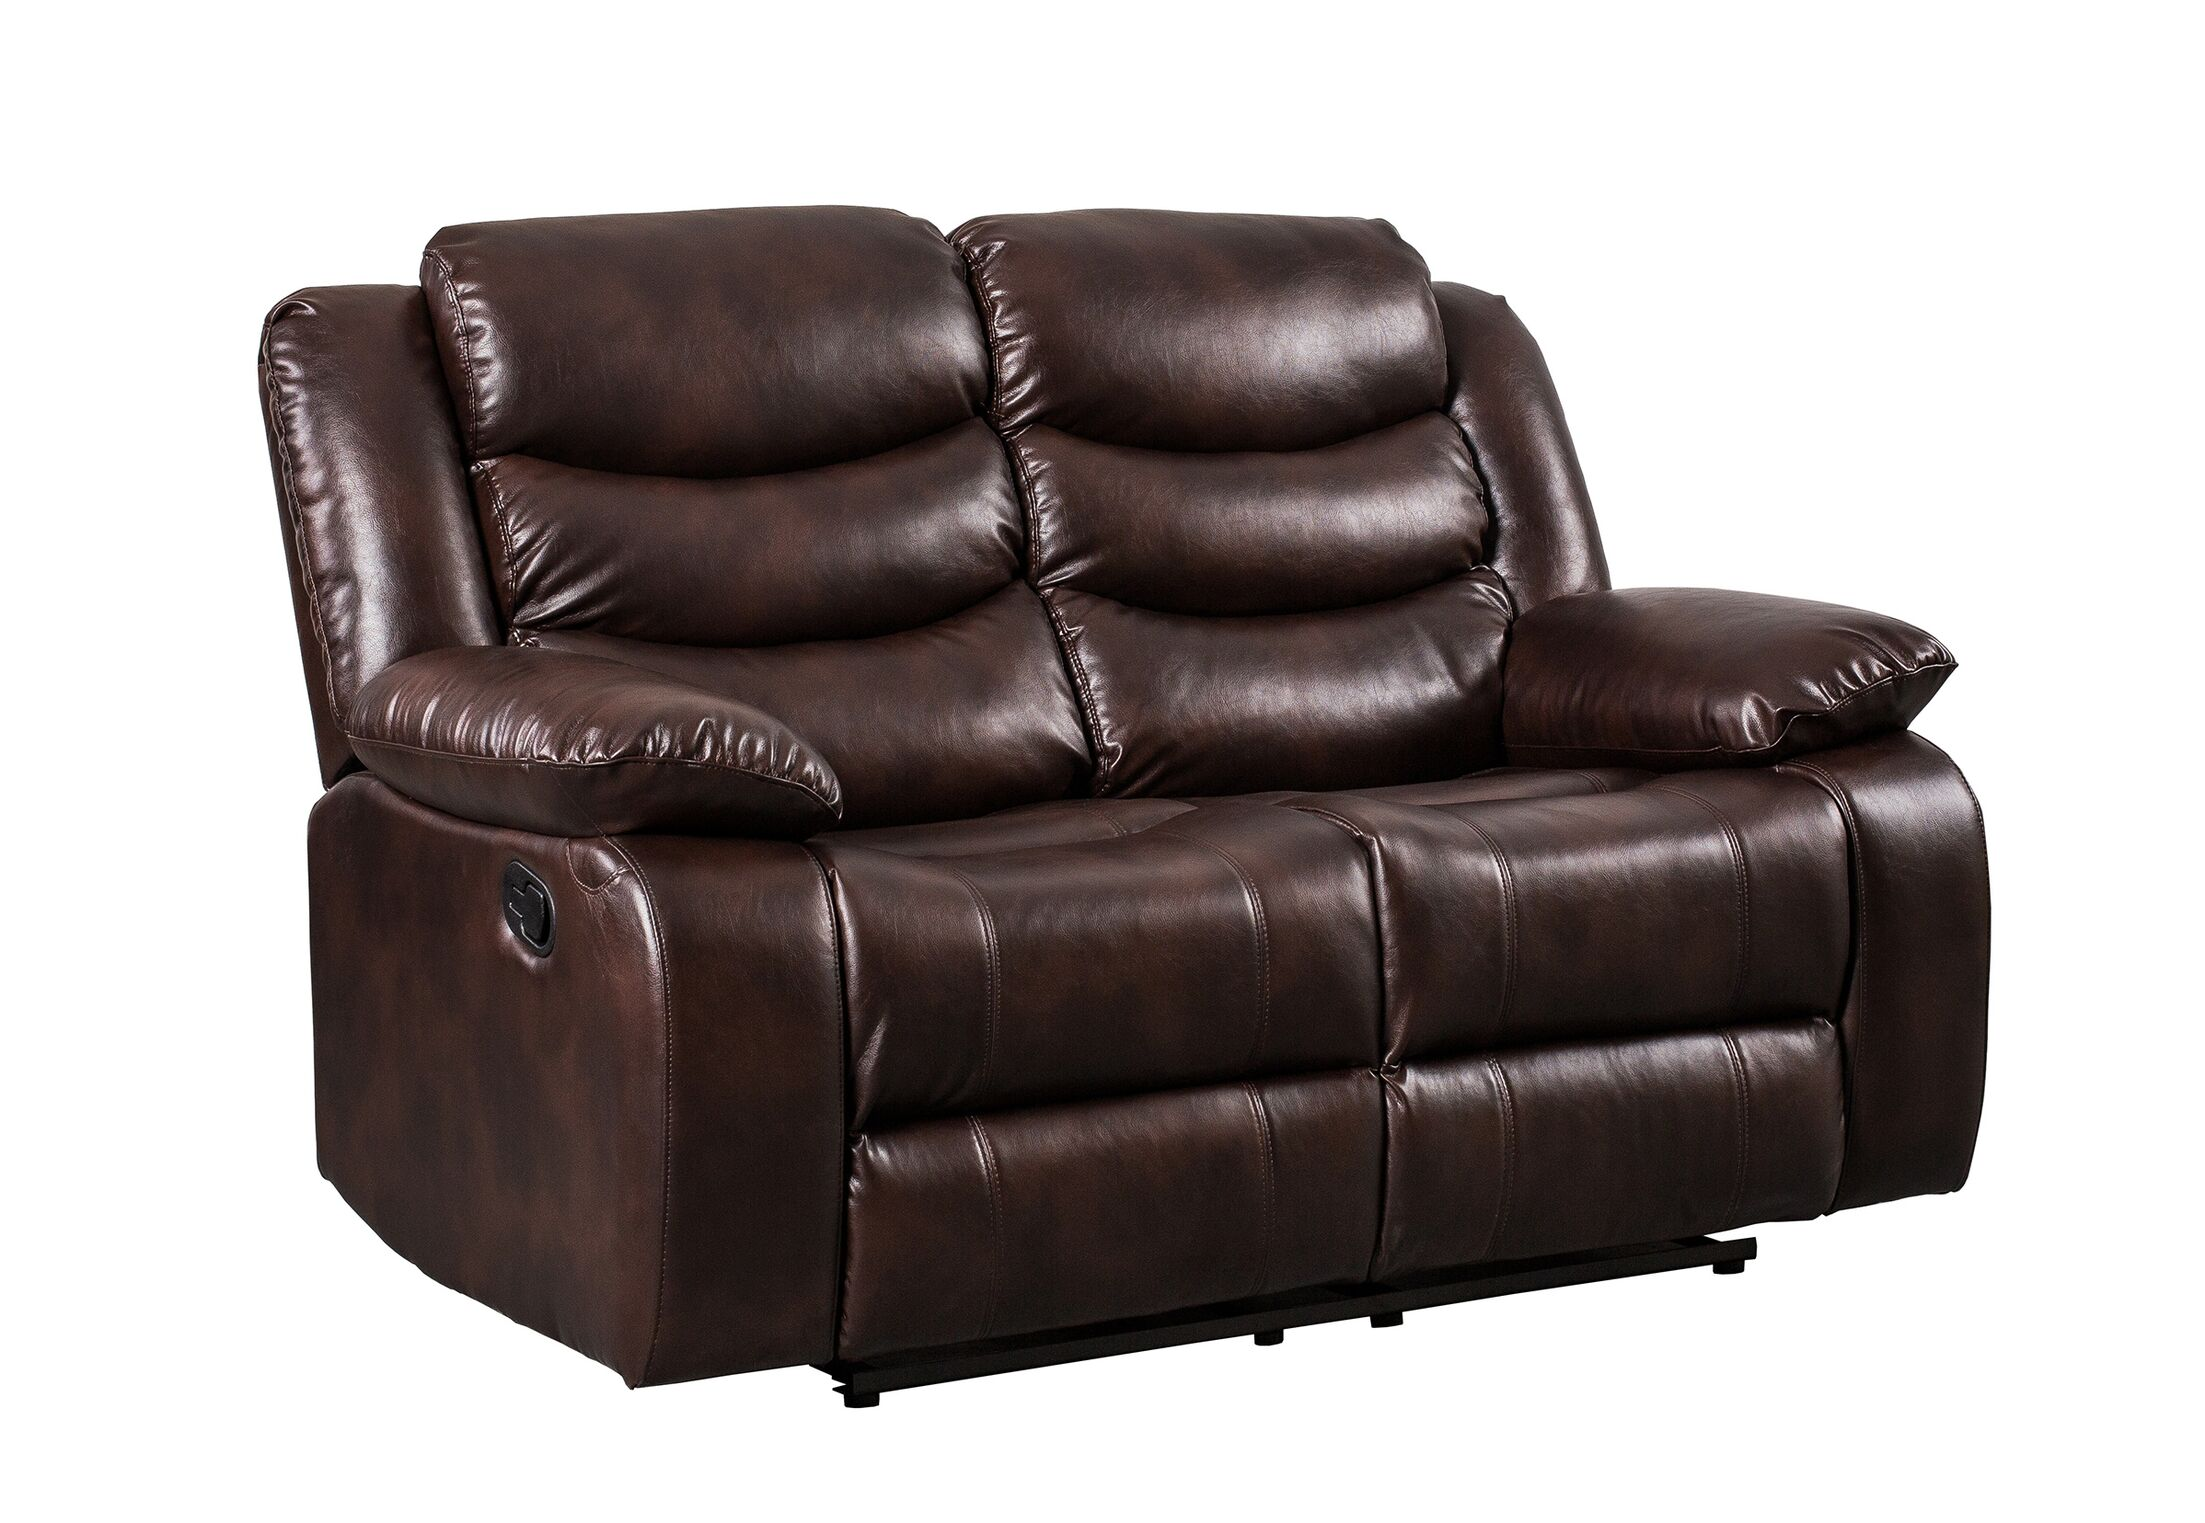 Hiles Reclining Loveseat Upholstered: Brown